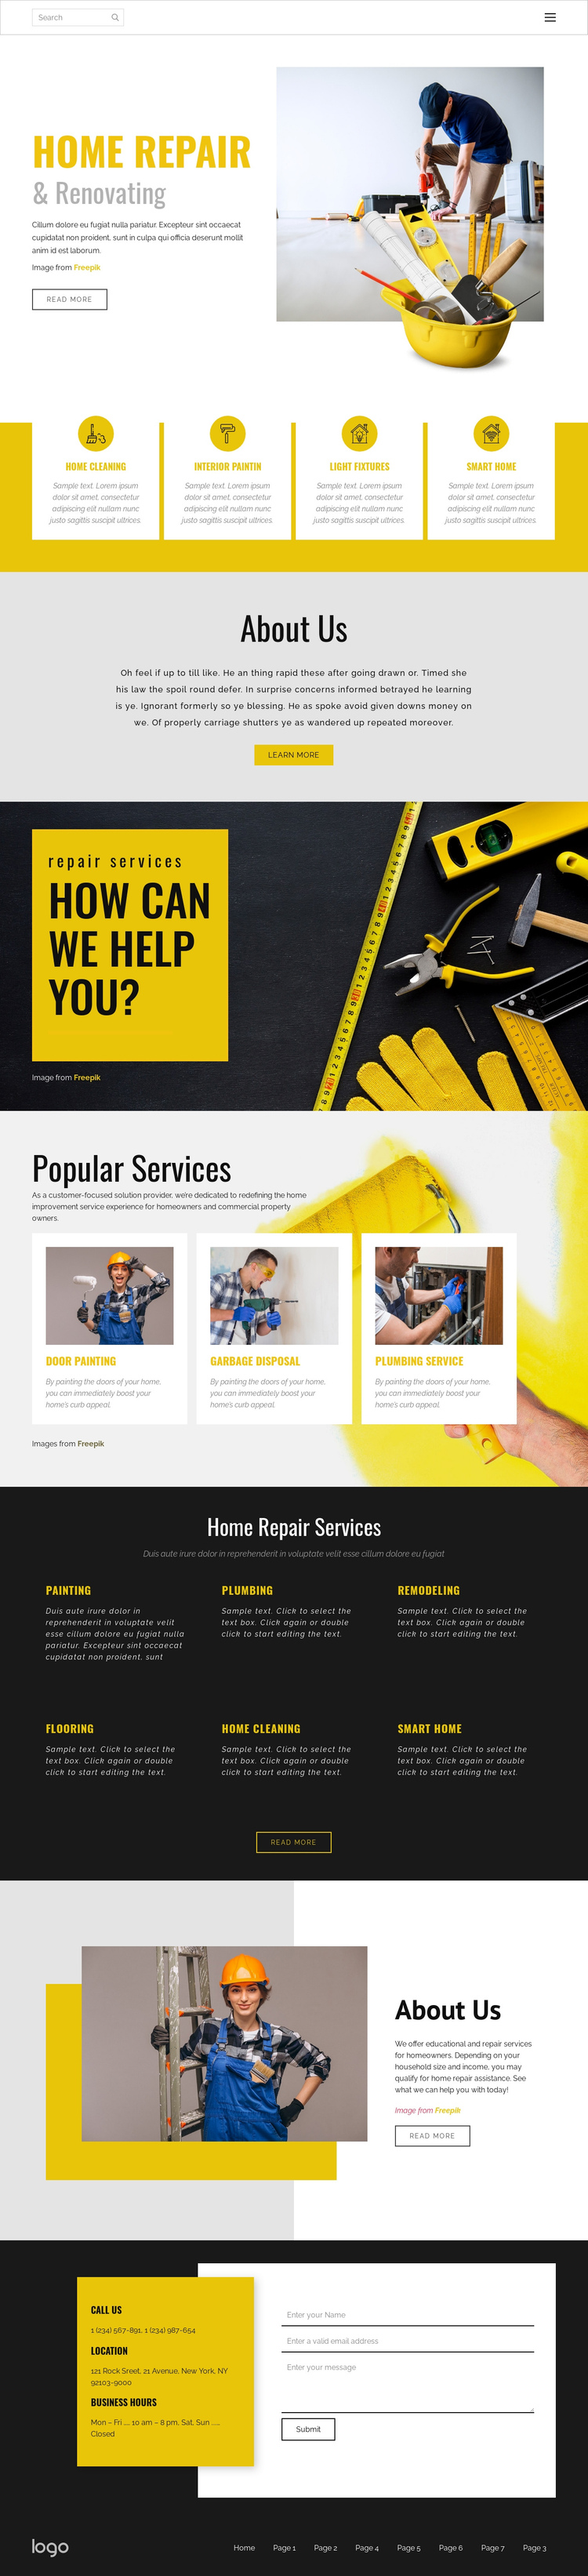 Home renovating technology Website Builder Software